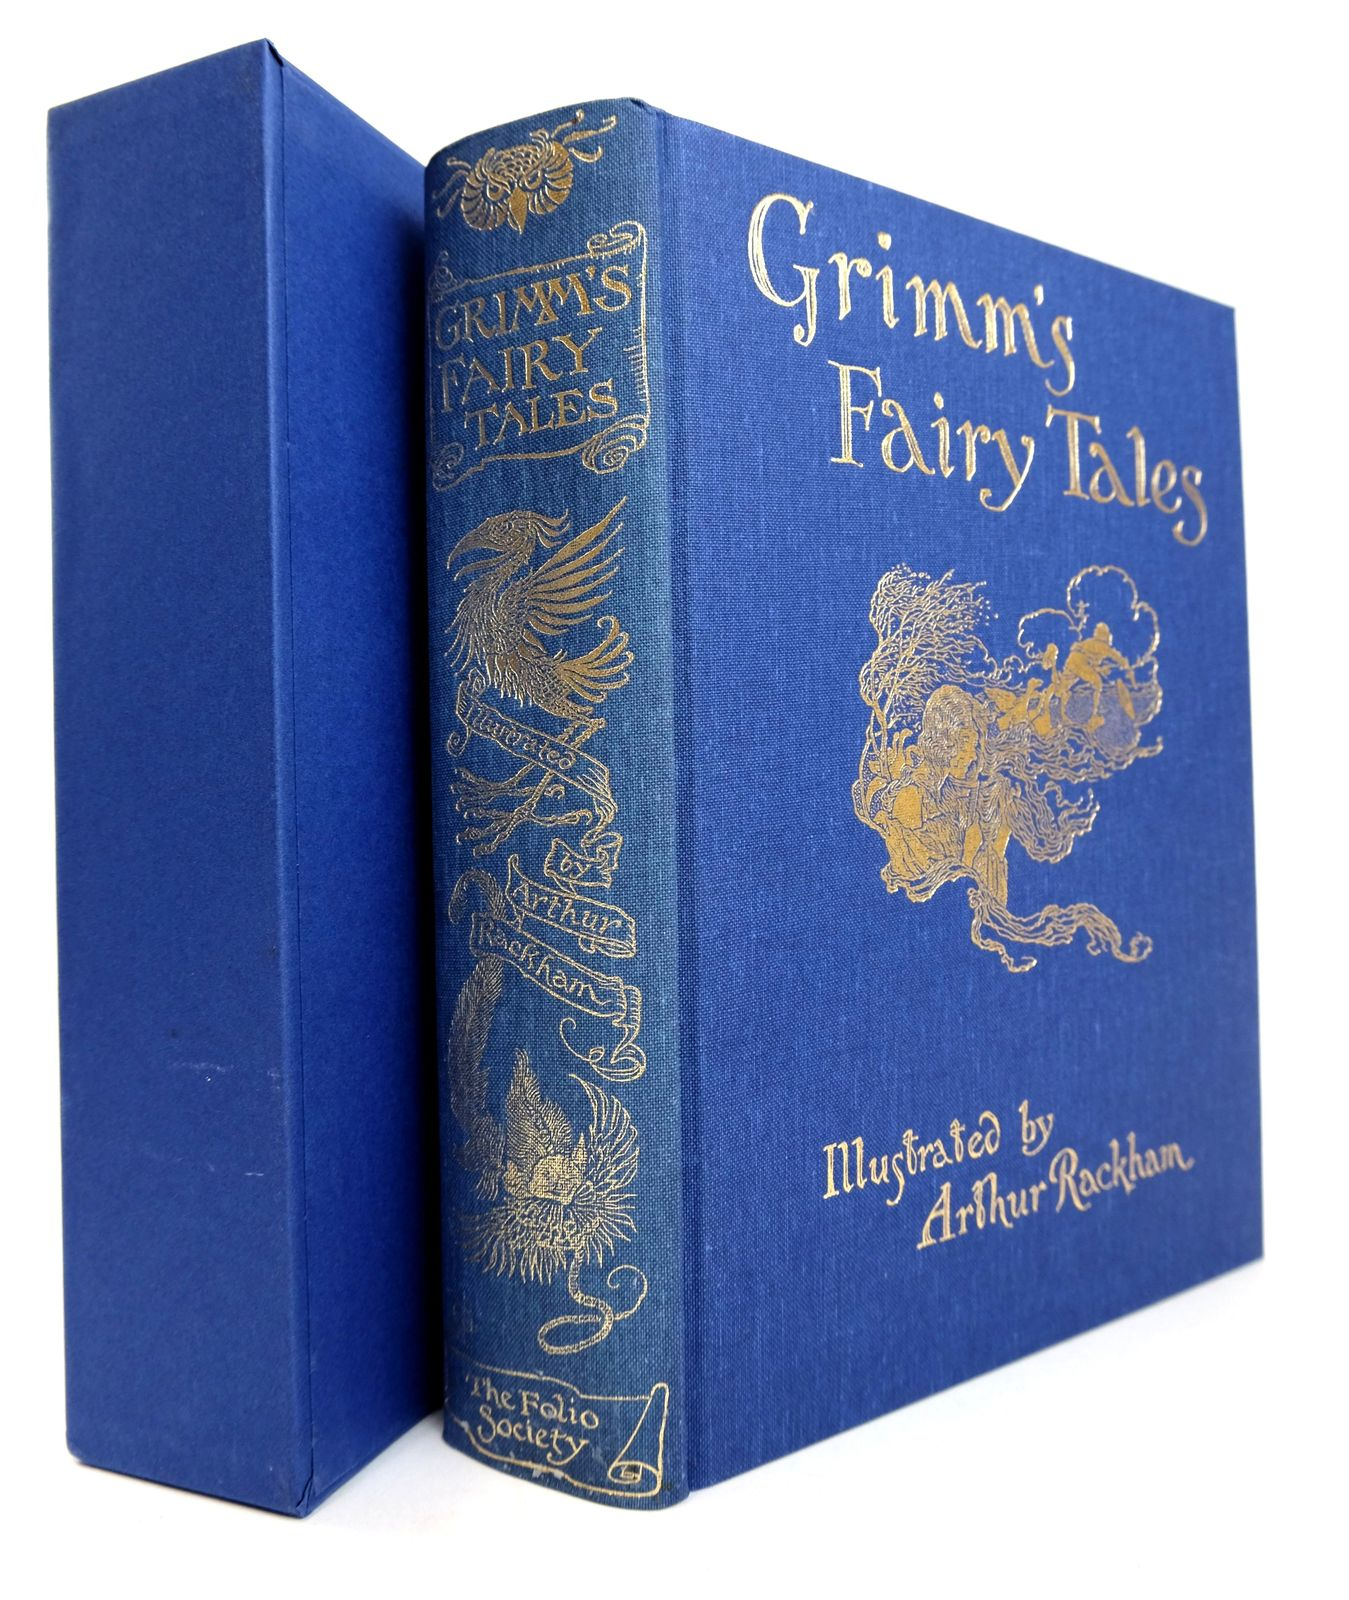 Photo of THE FAIRY TALES OF THE BROTHERS GRIMM written by Grimm, Brothers illustrated by Rackham, Arthur published by Folio Society (STOCK CODE: 1818798)  for sale by Stella & Rose's Books